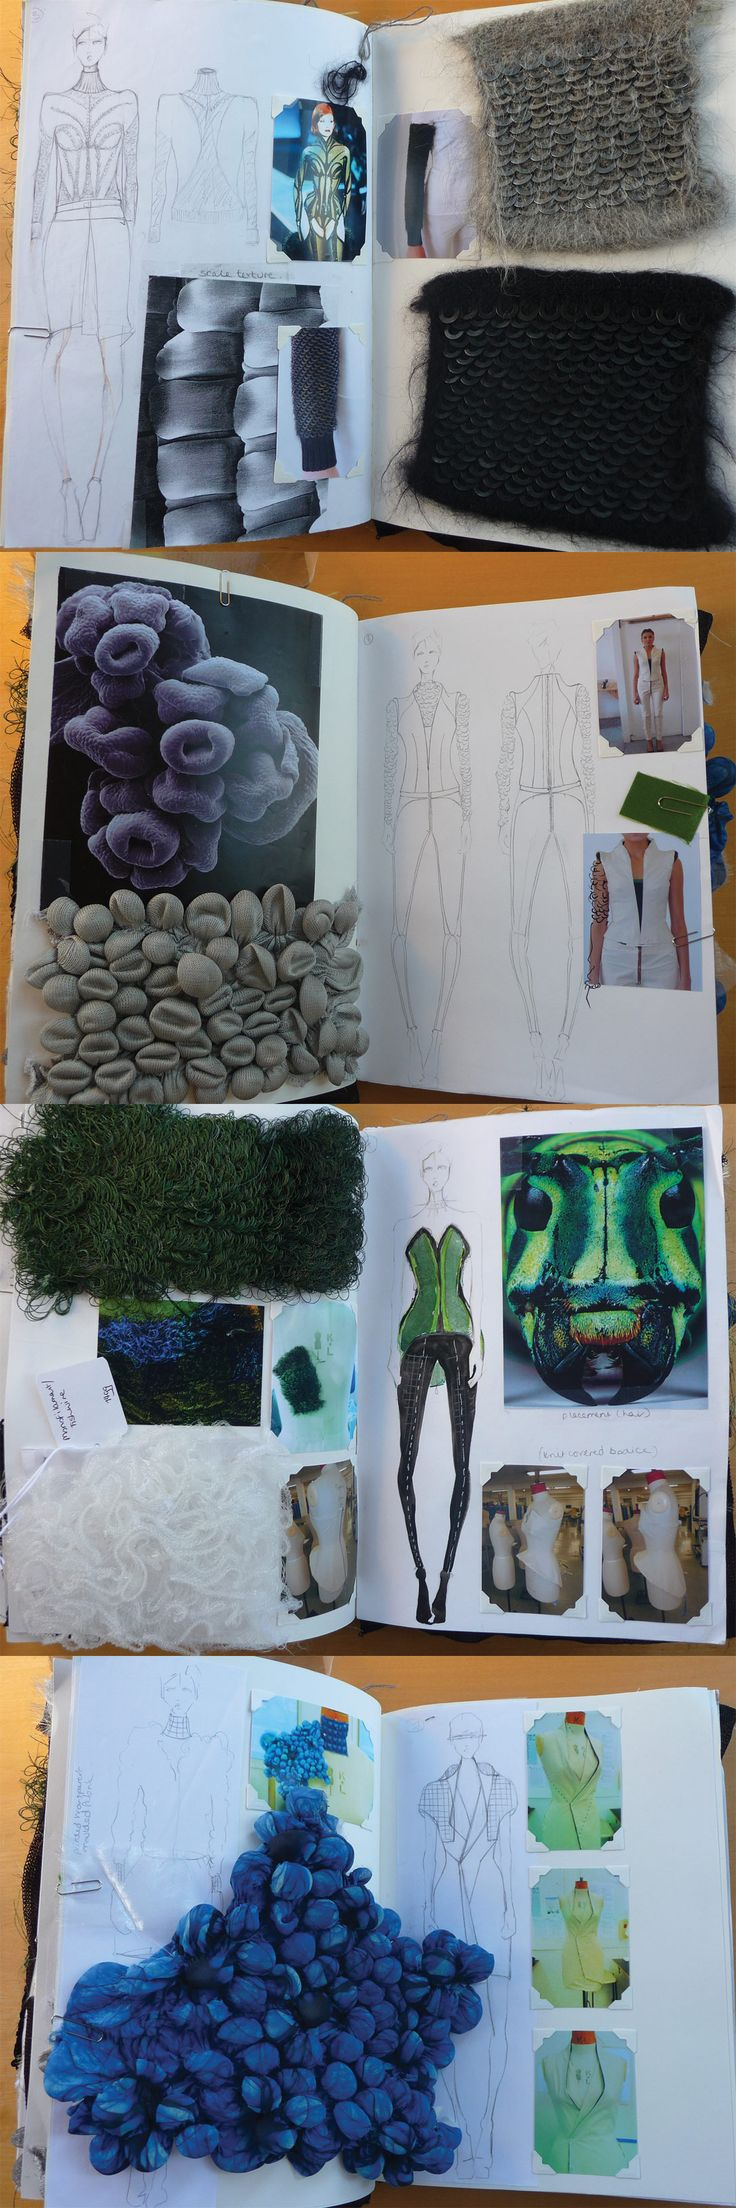 Daniel Lee, Central Saint Martins College of Art & Design: fashion design sketchbook - layout, drawings, fabric sampling